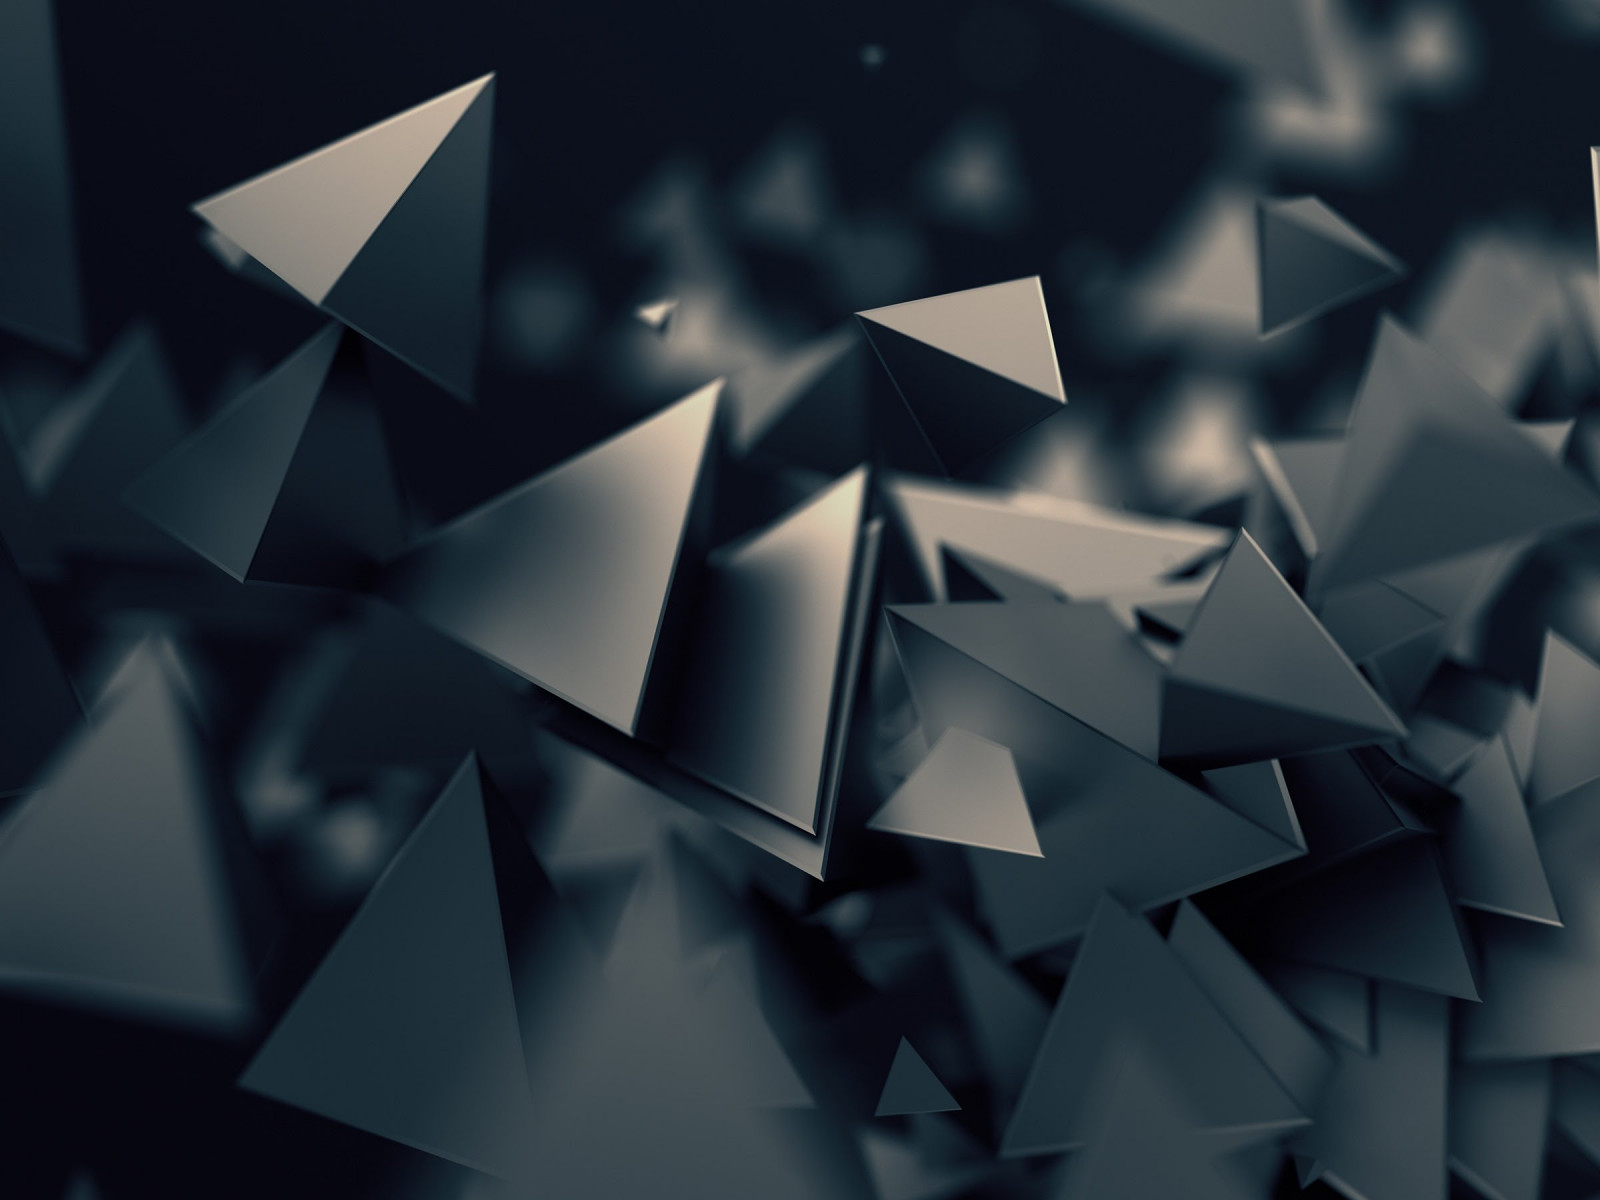 Triangular prisms | 1600x1200 wallpaper